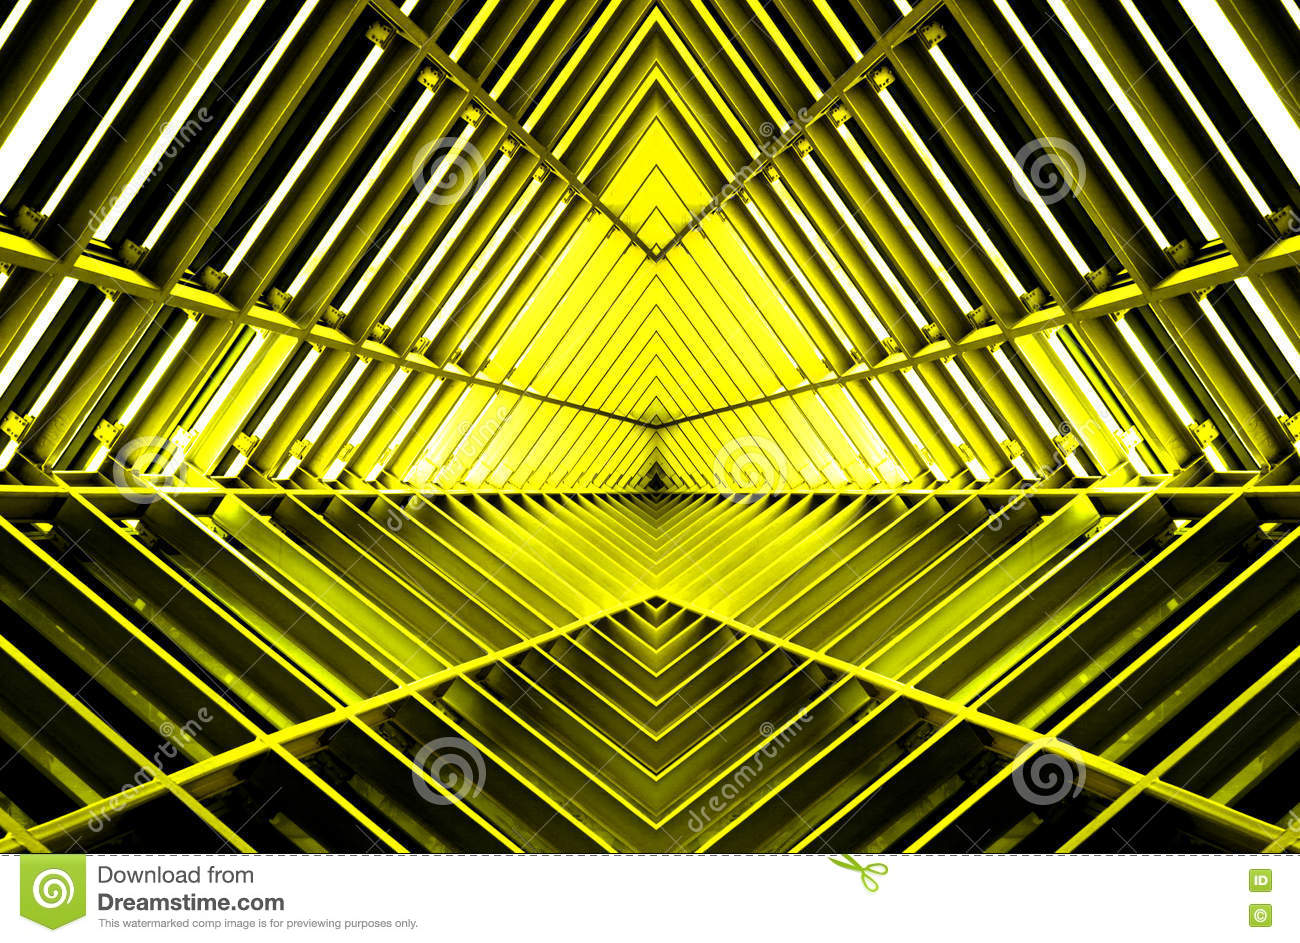 Metal structure similar to spaceship interior in yellow light.